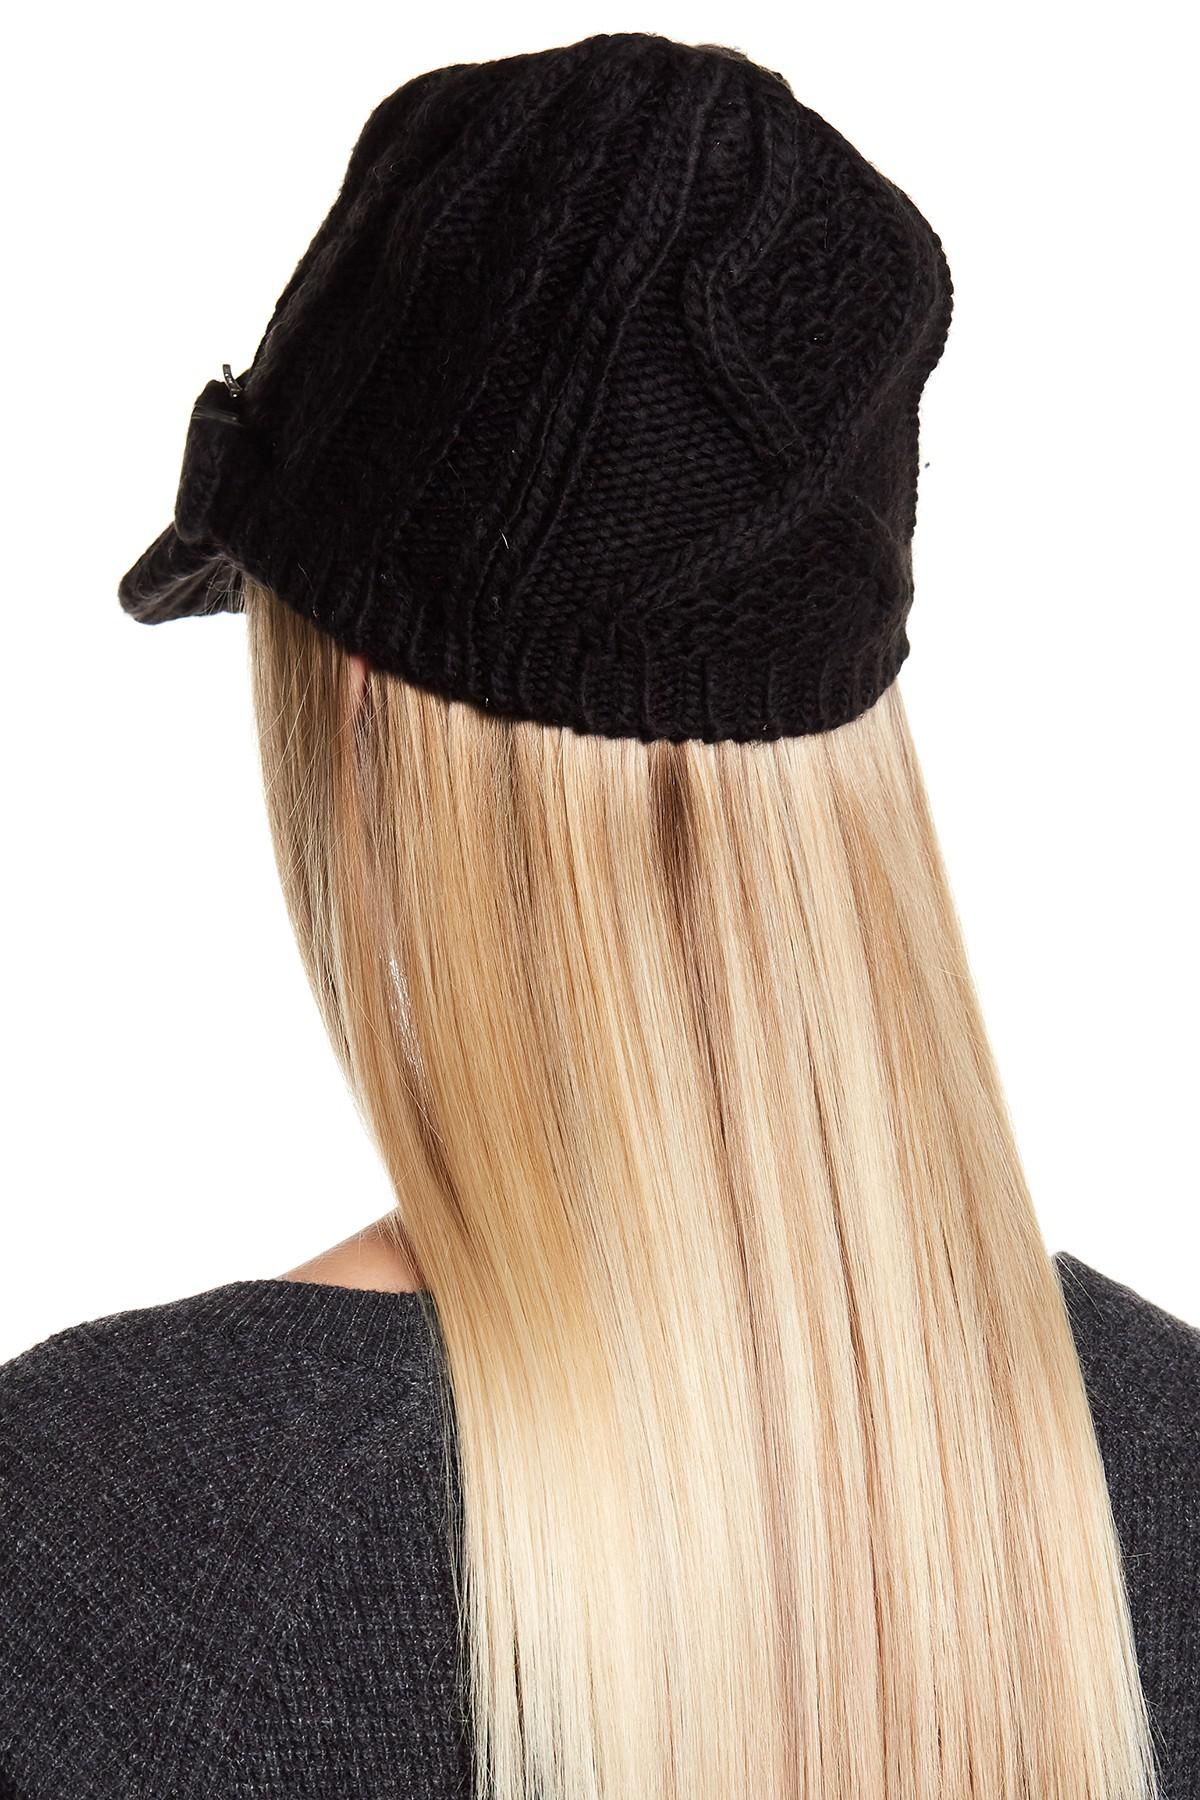 354f1c7230 ... good lyst michael michael kors classic cable knit news boy hat in black  99c26 1830c ...